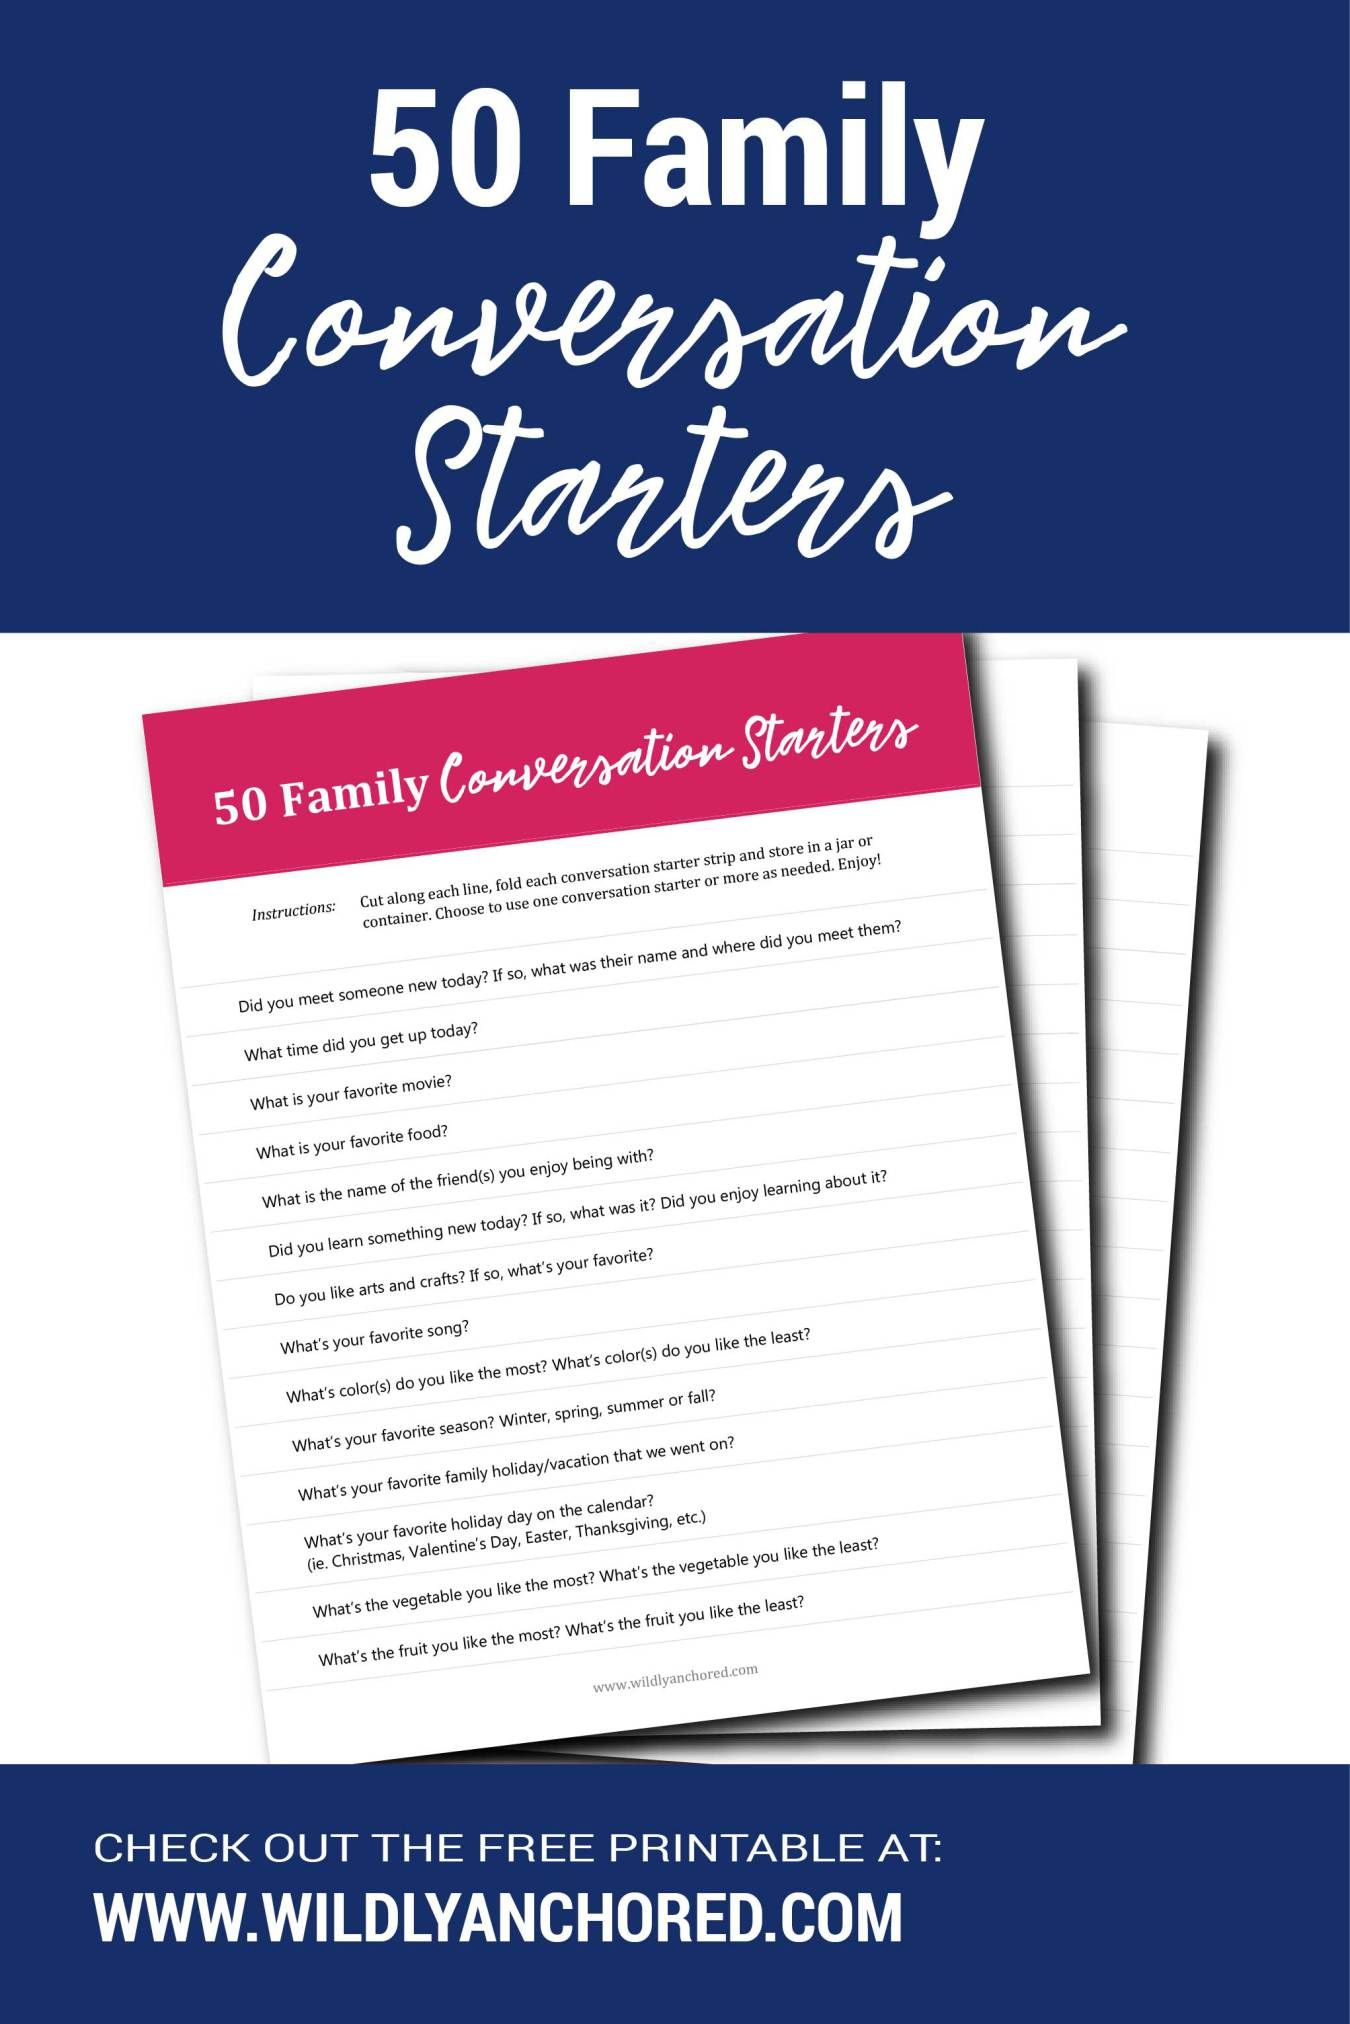 50 Family Conversation Starters Free Printable